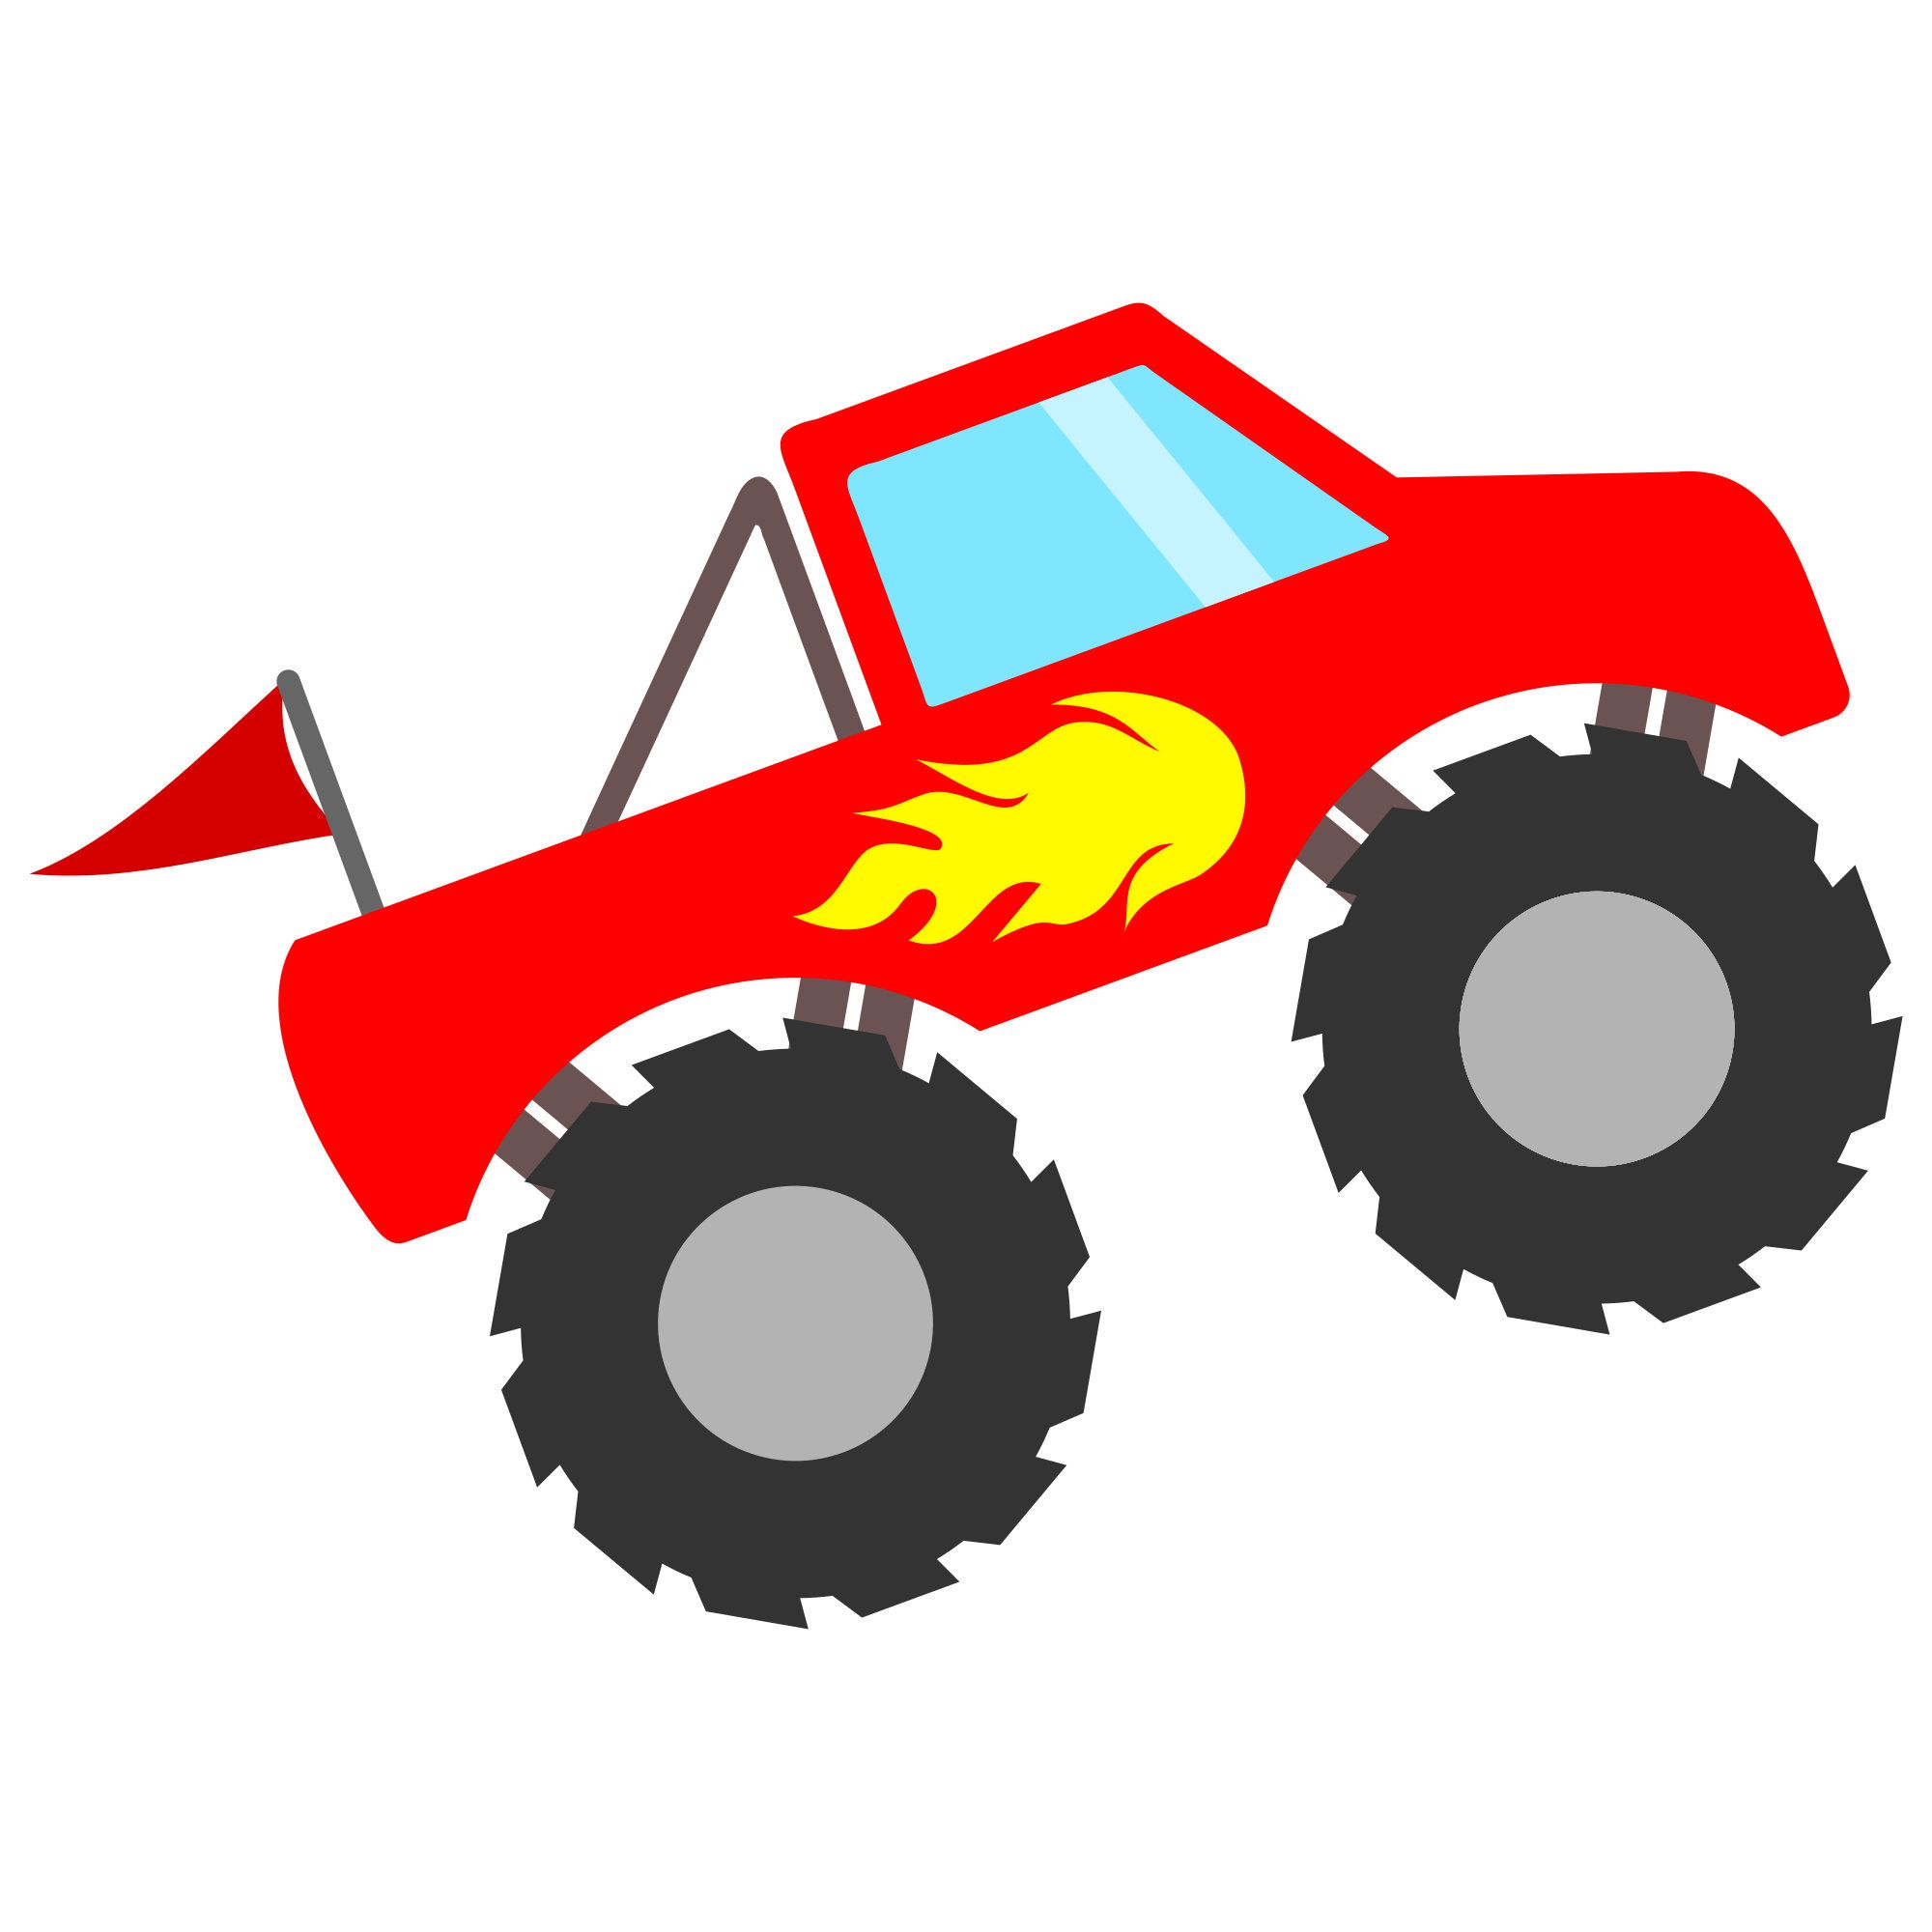 Monster trucks clipart clip royalty free library Monster Truck with Flames SVG file for Cricut and Silhouette ... clip royalty free library